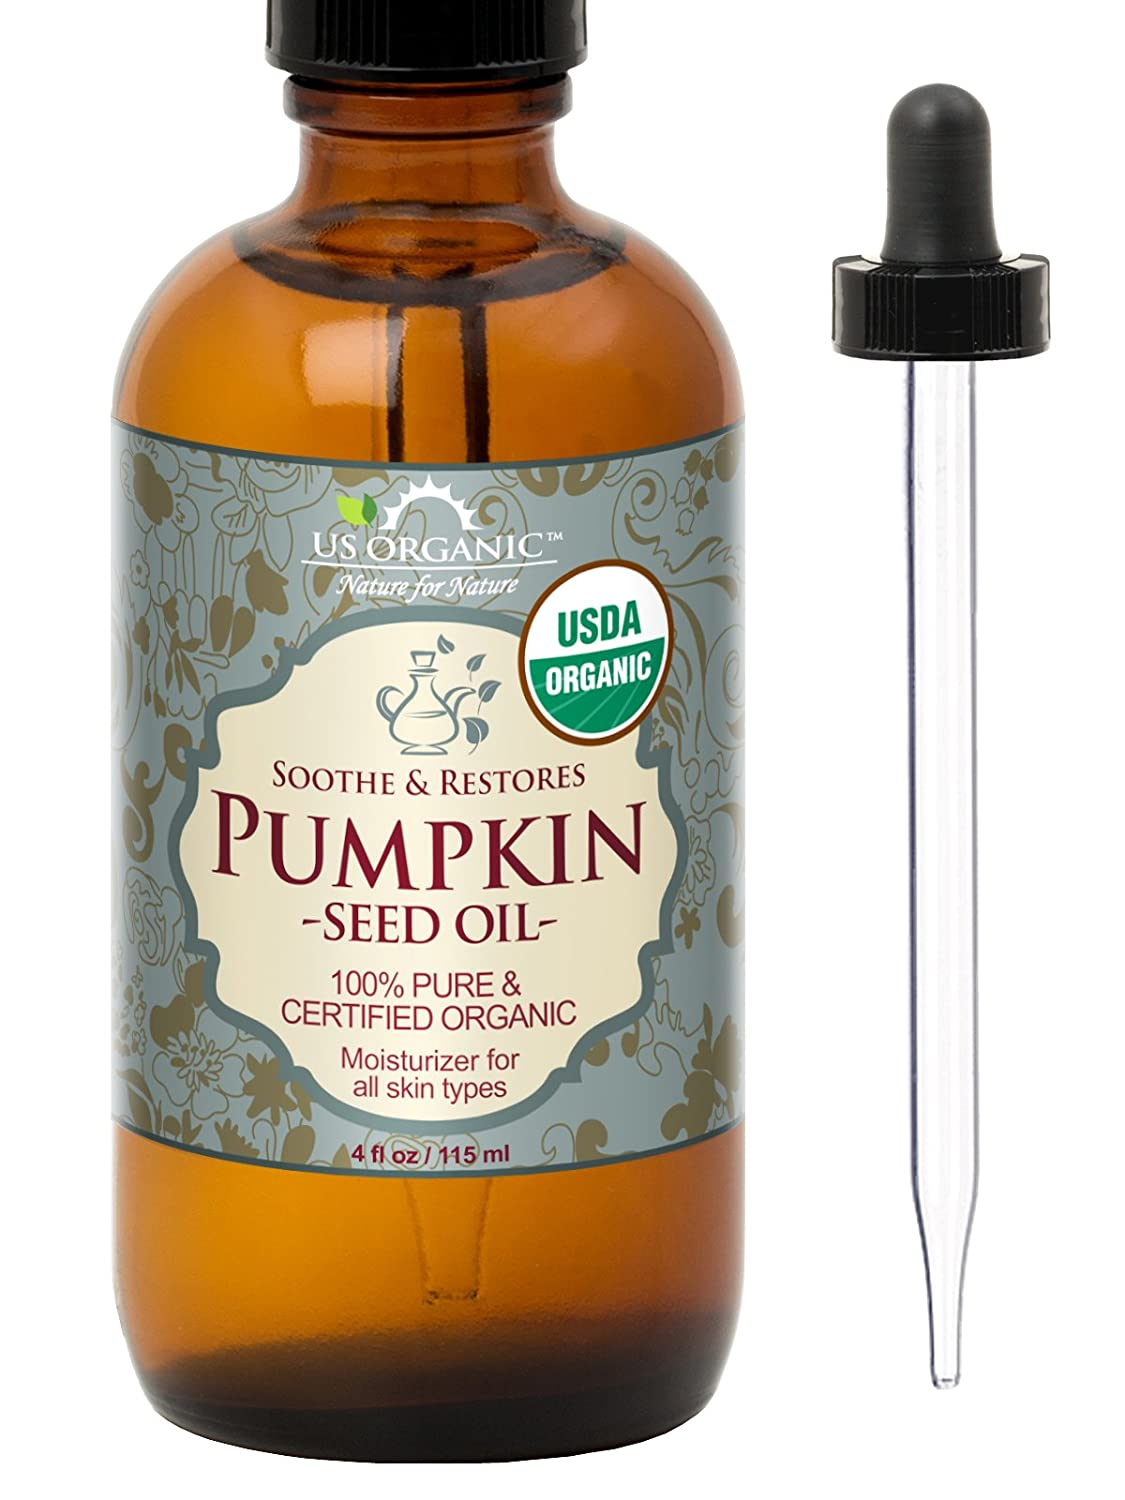 US Organic Pumpkin Seed Oil, USDA Certified Organic,100% Pure & Natural, Cold Pressed Virgin, Unrefined in Amber Glass Bottle w/Glass Eyedropper for Easy Application (4 oz (115 ml)) US Organic Group Corp